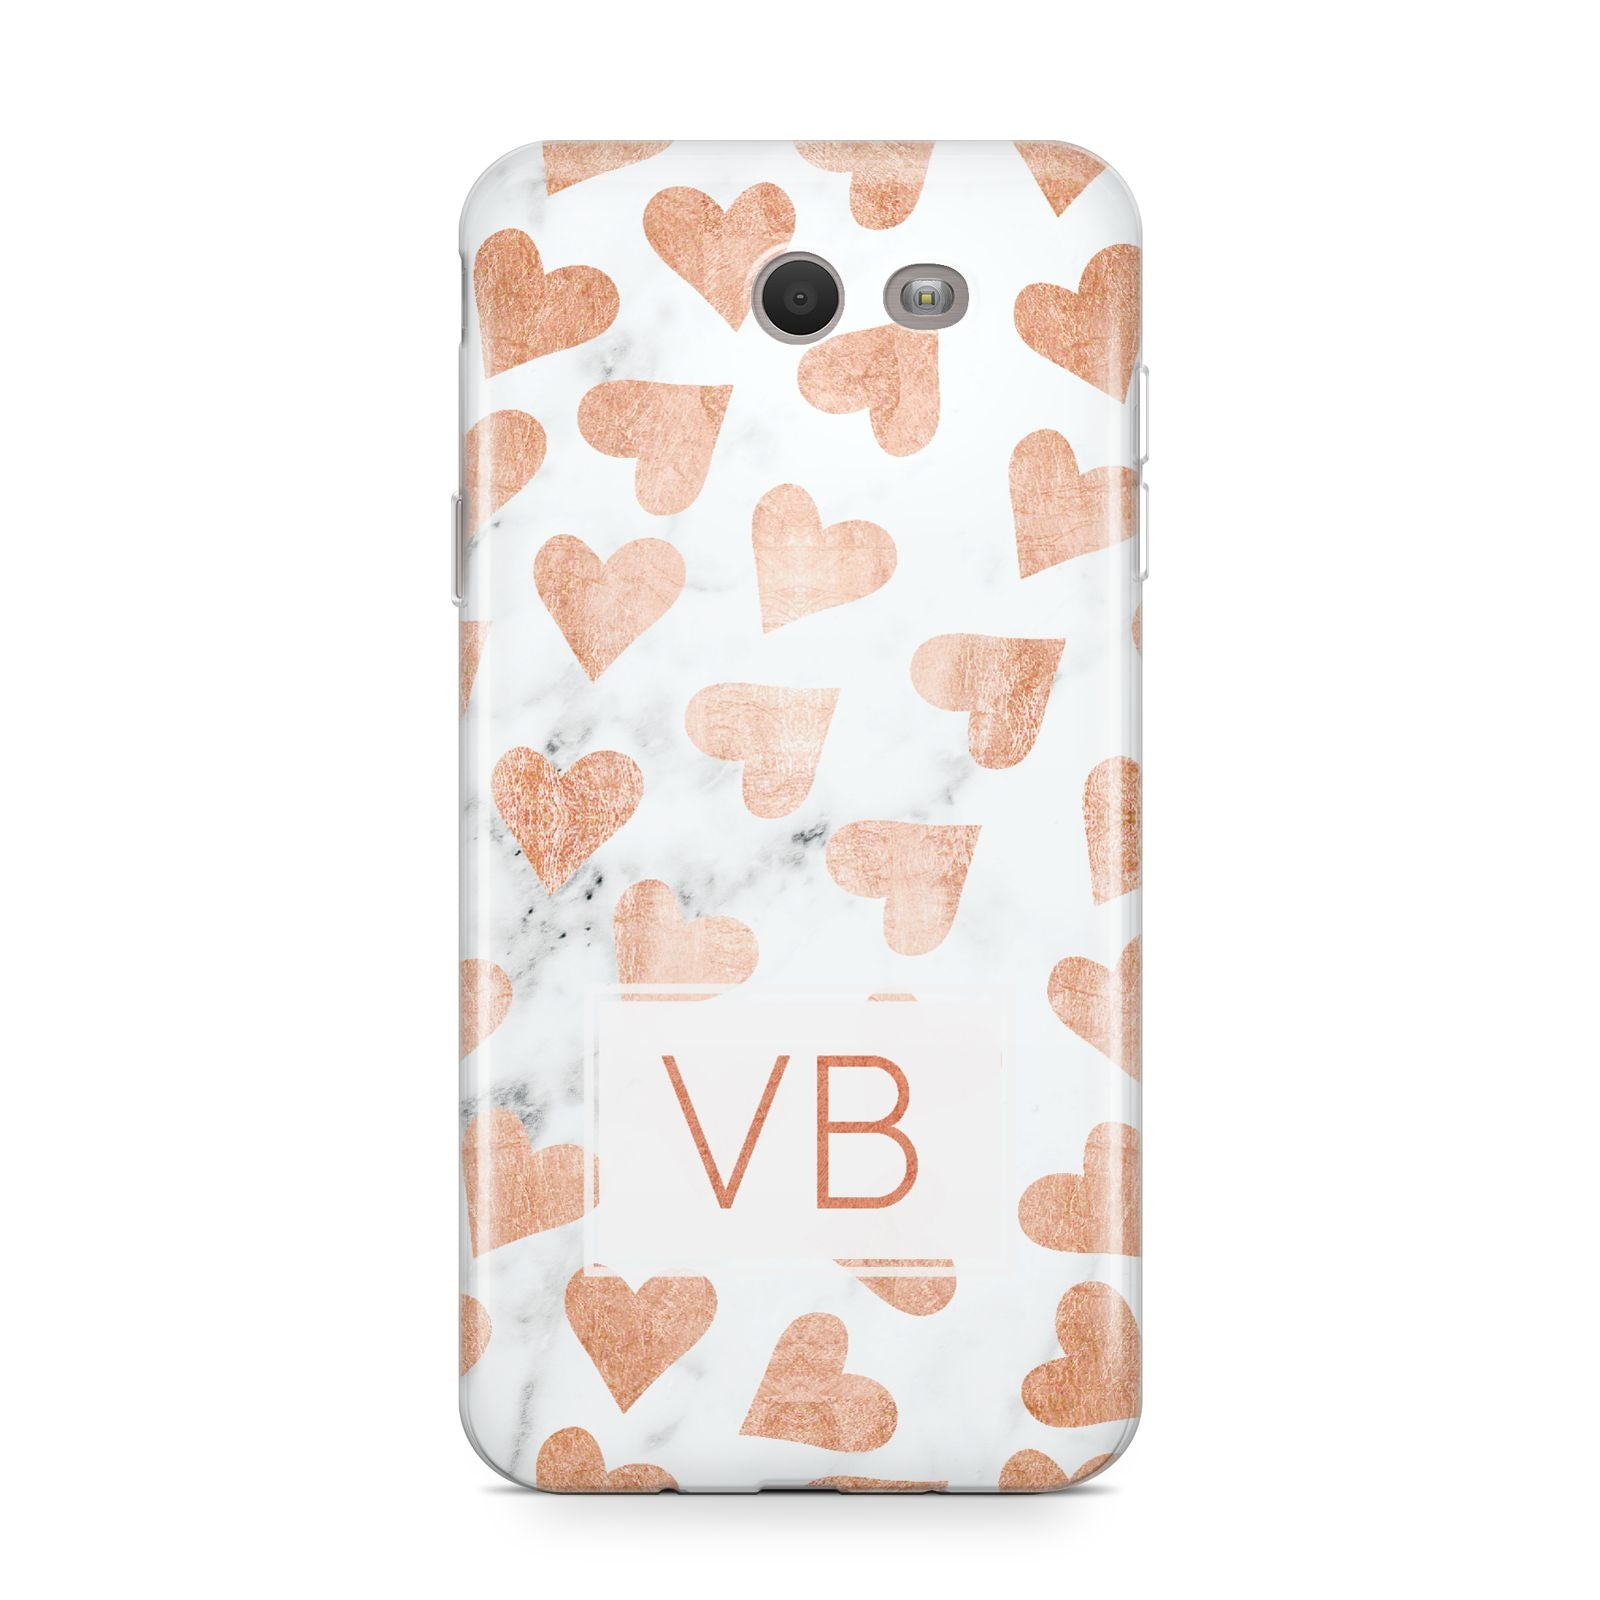 Personalised Heart Initialled Marble Samsung Galaxy J7 2017 Case